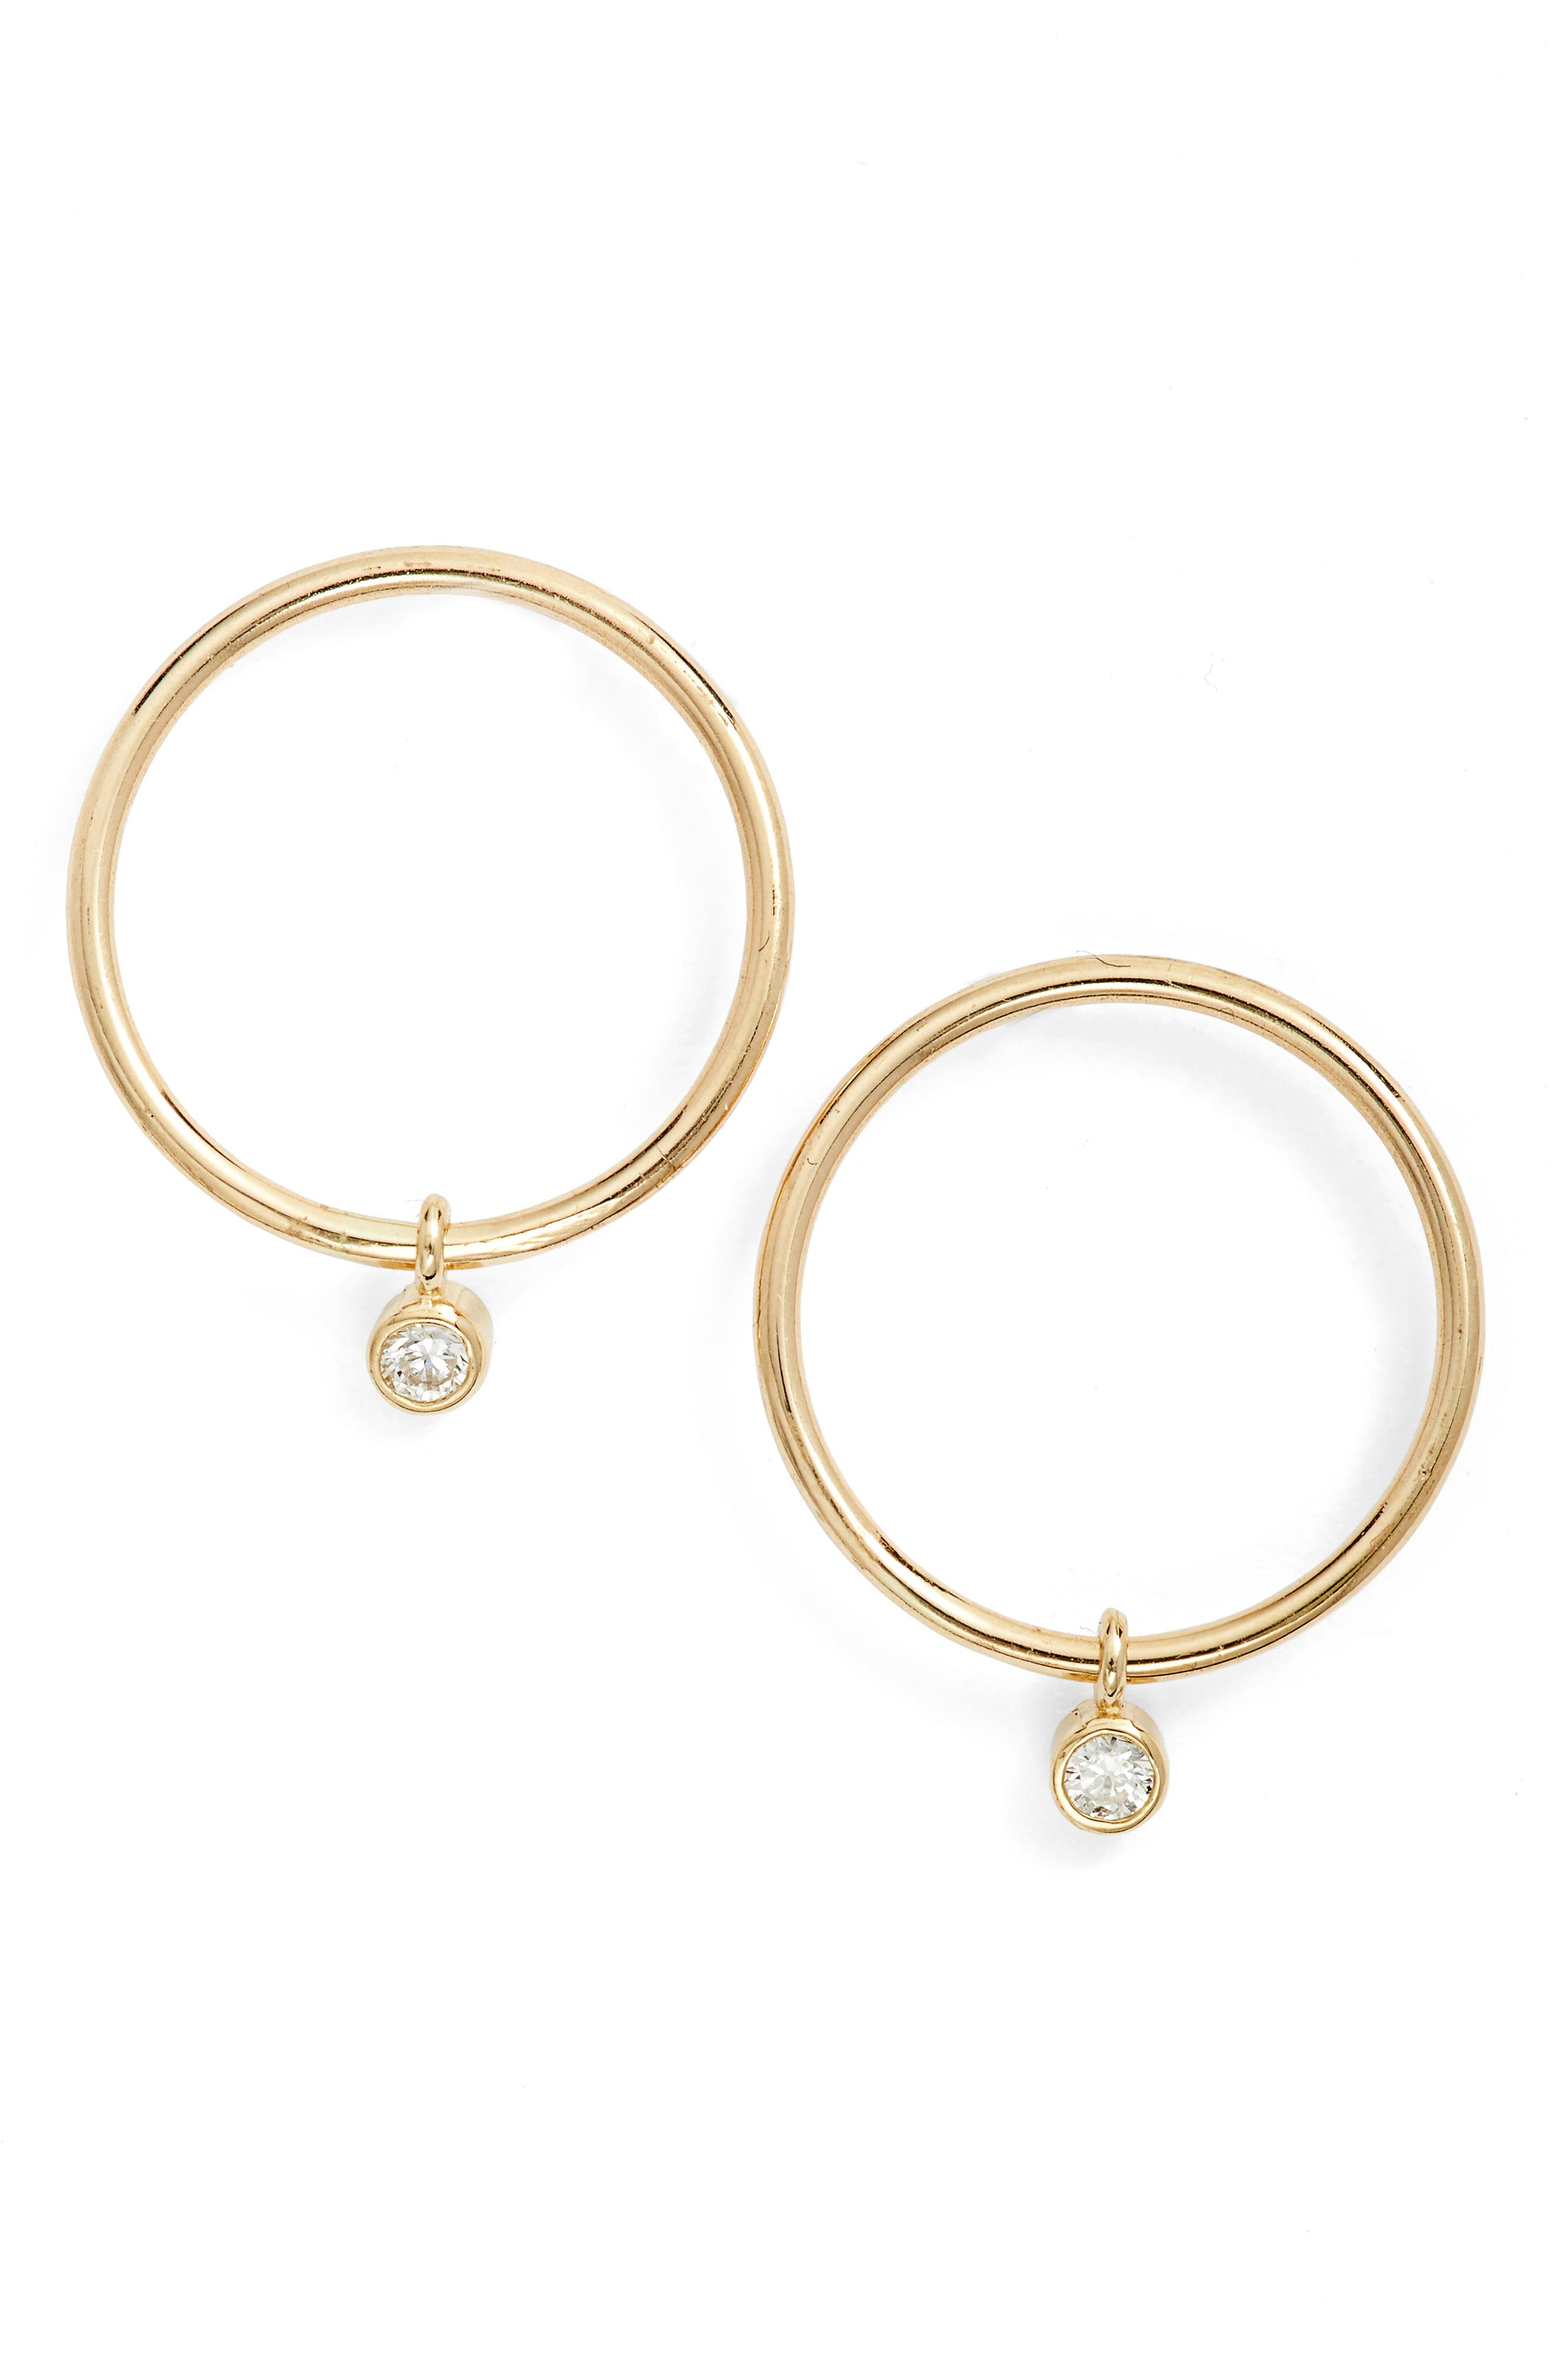 Diamond Small Frontal Hoop Earrings,                         Main,                         color, Yellow Gold